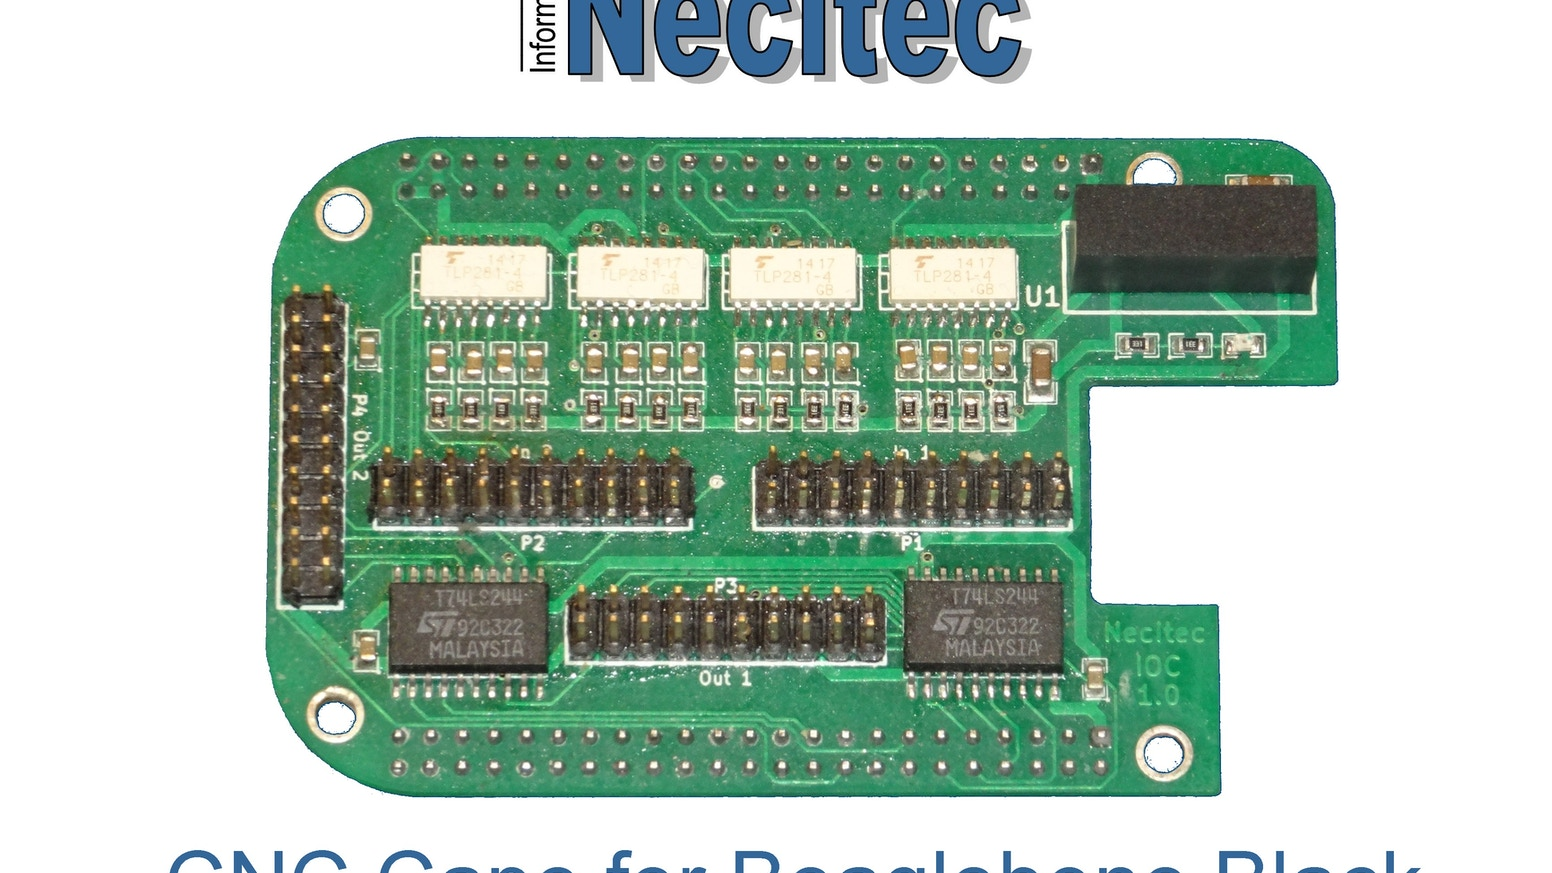 Up to 4 axis Beaglebone black based CNC control by Necitec